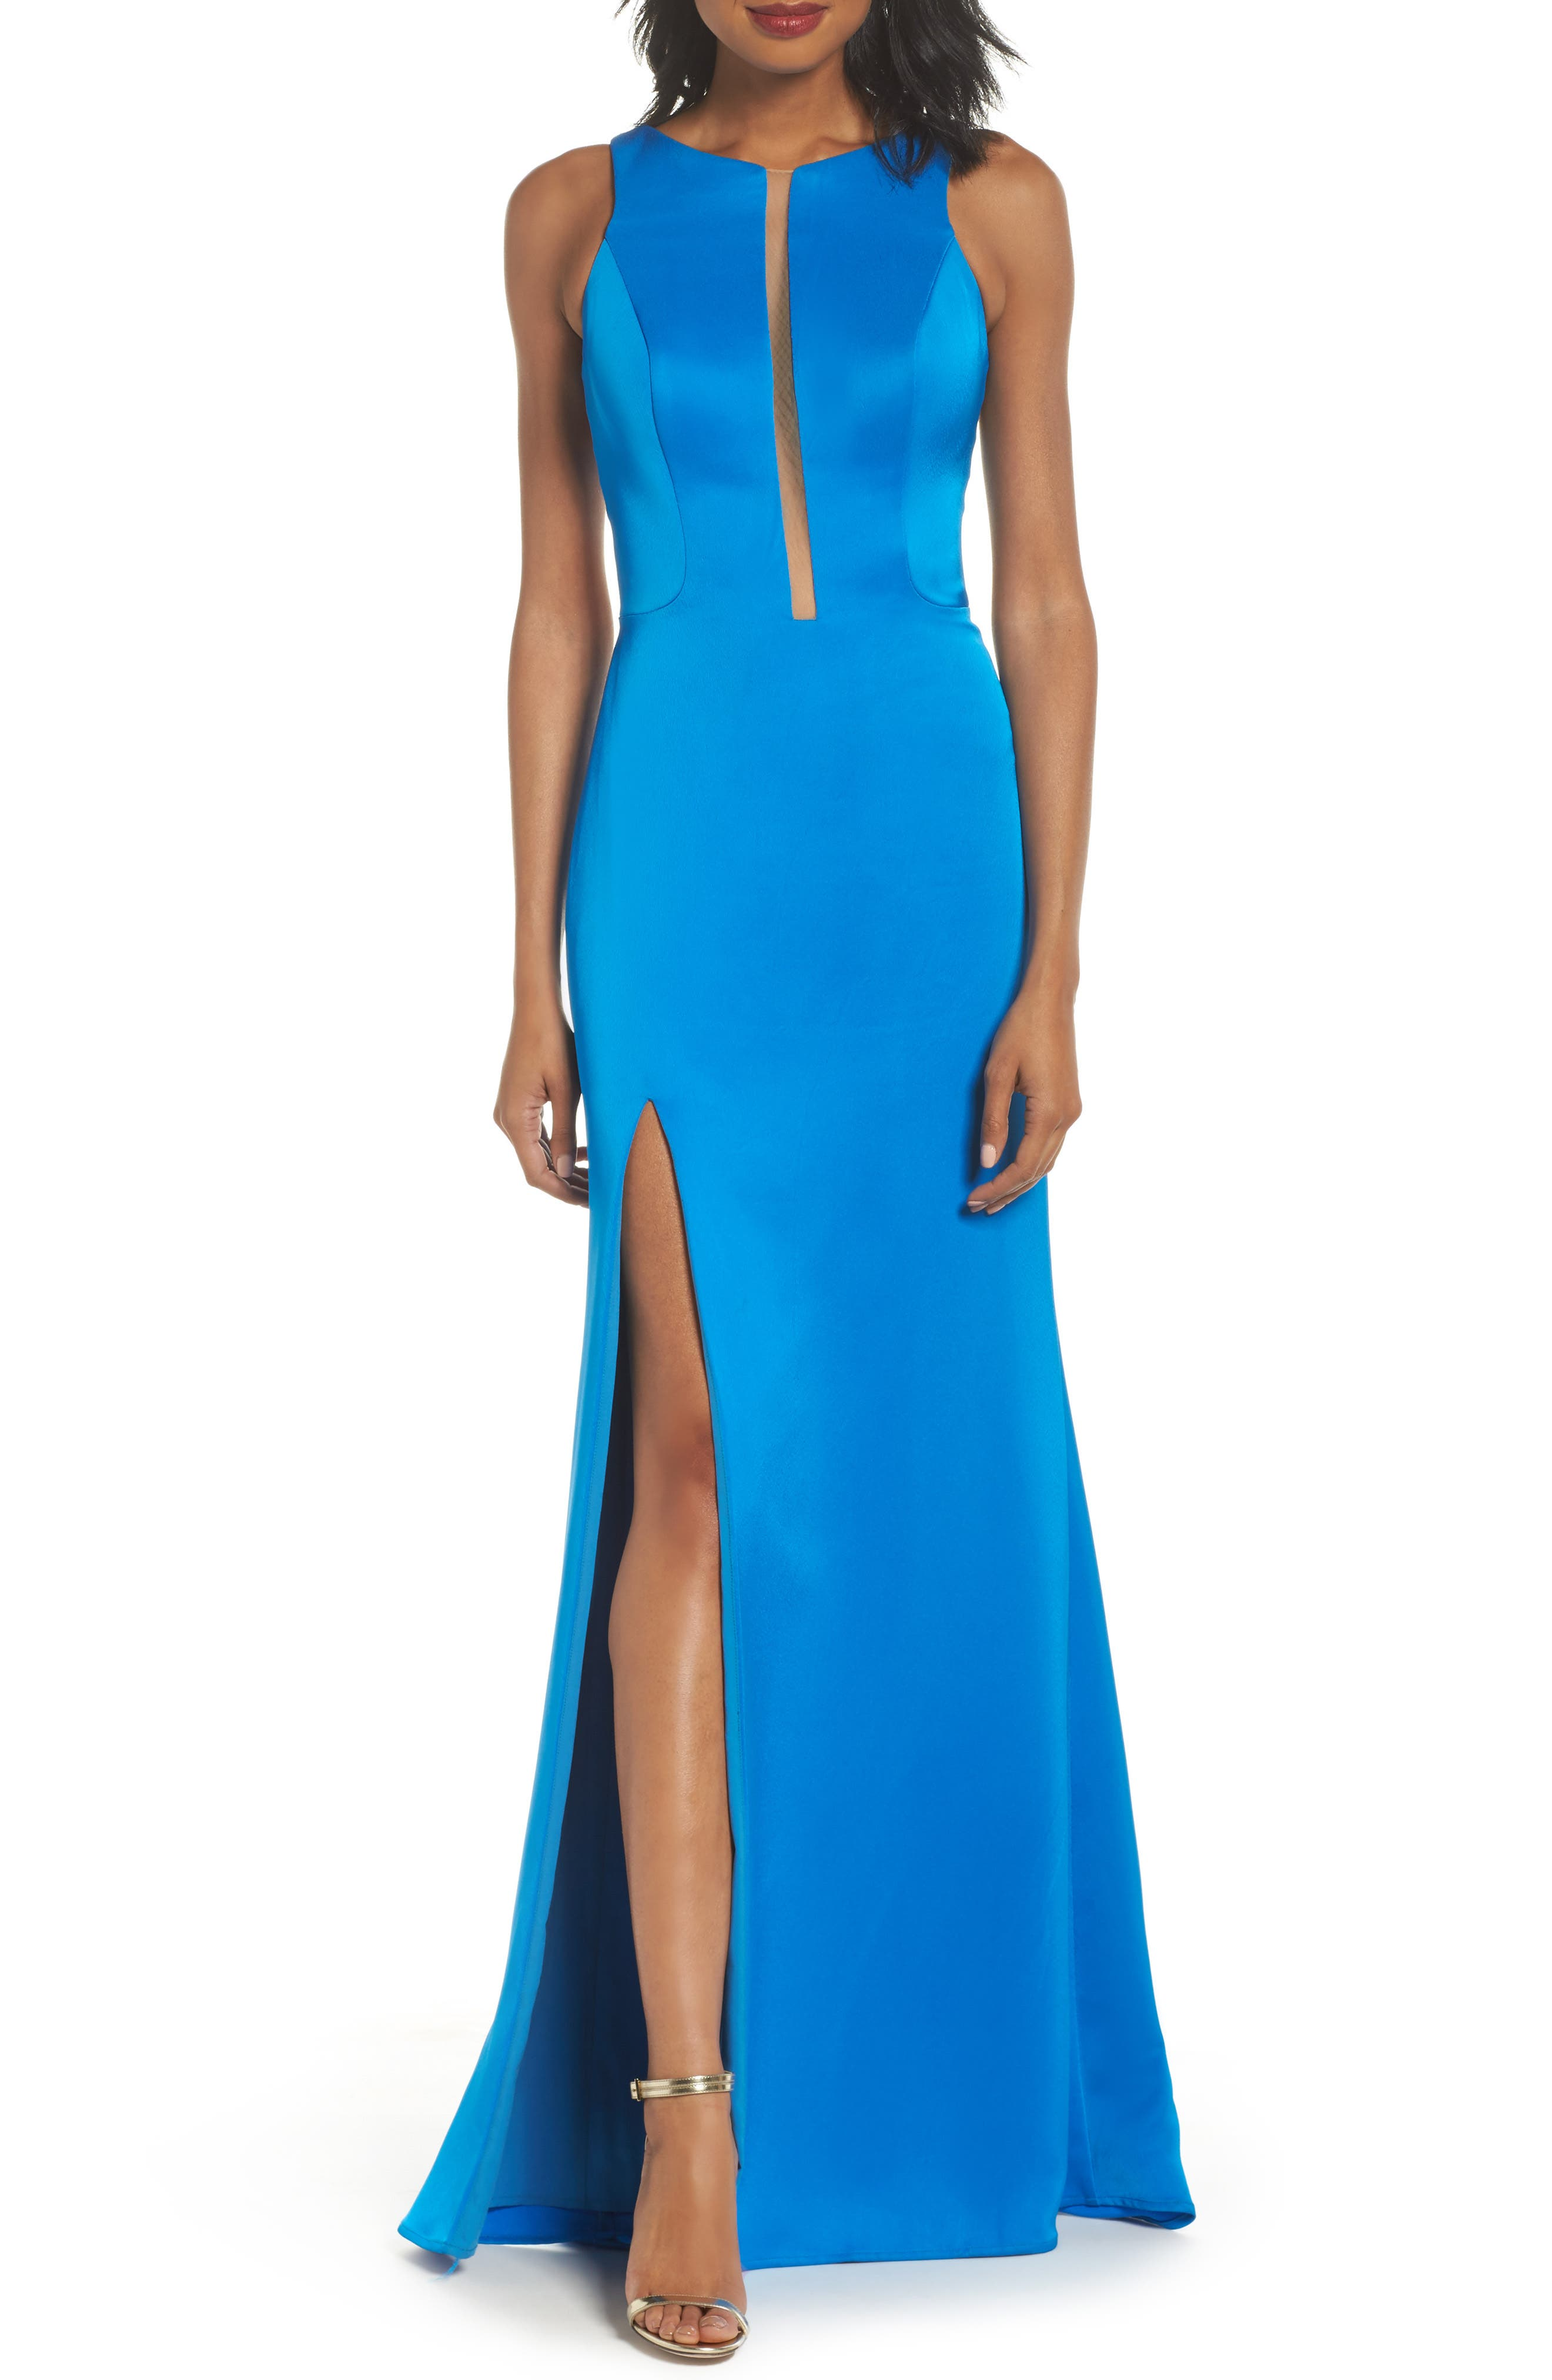 Cage Back Satin Gown,                         Main,                         color, Ocean Blue